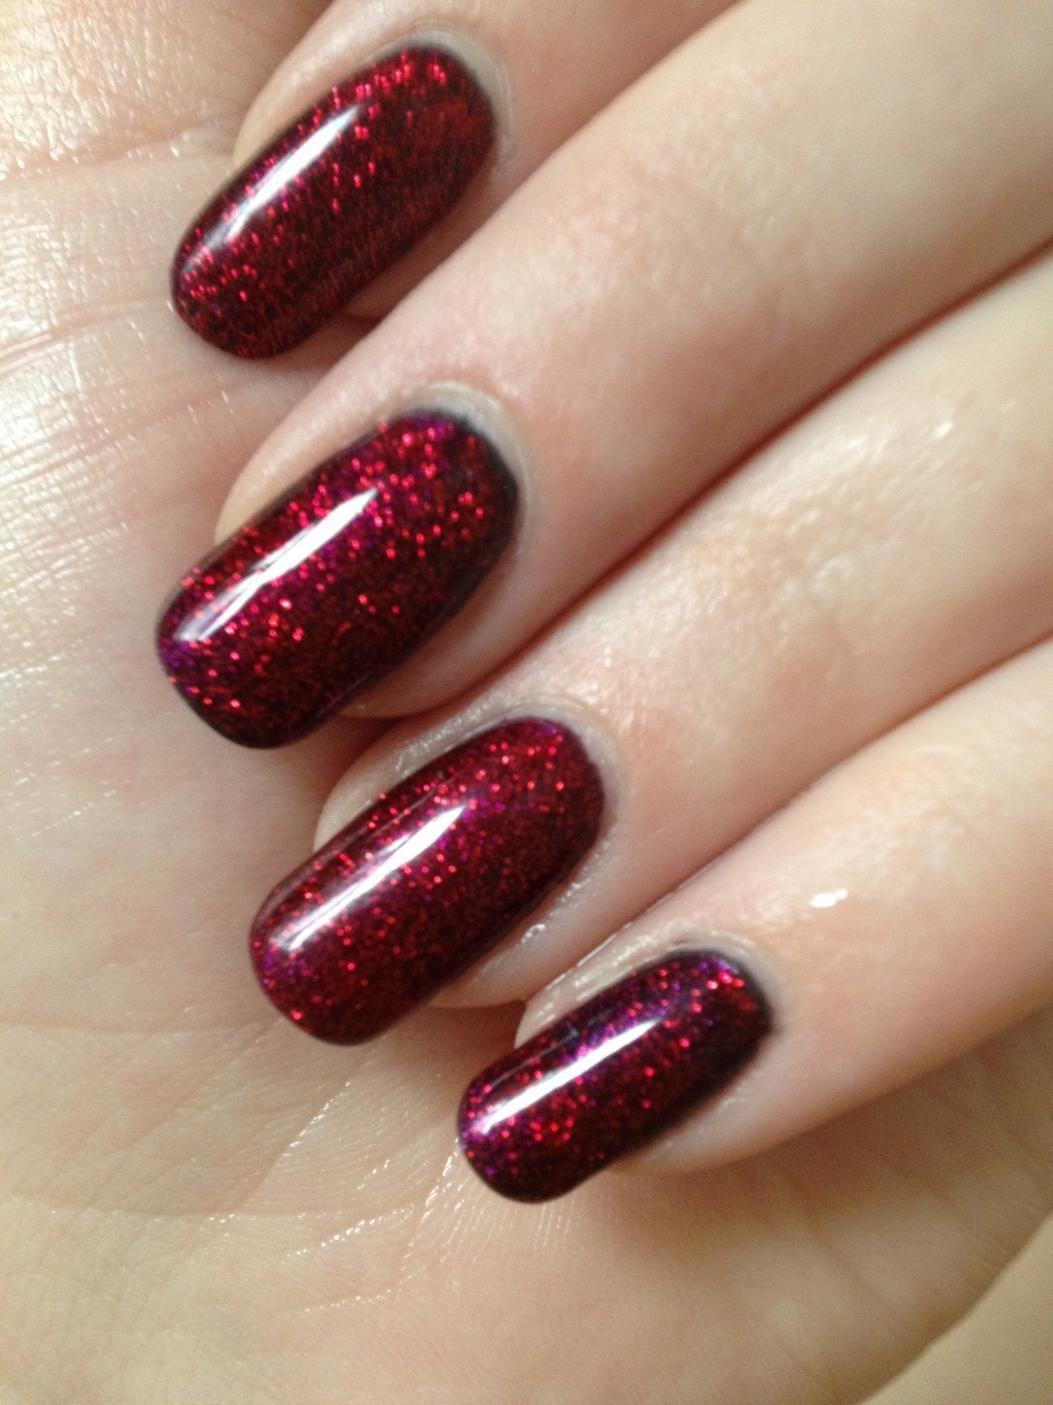 cnd shellac christmas nails designs for 2014 | Shellac Christmas duo ...